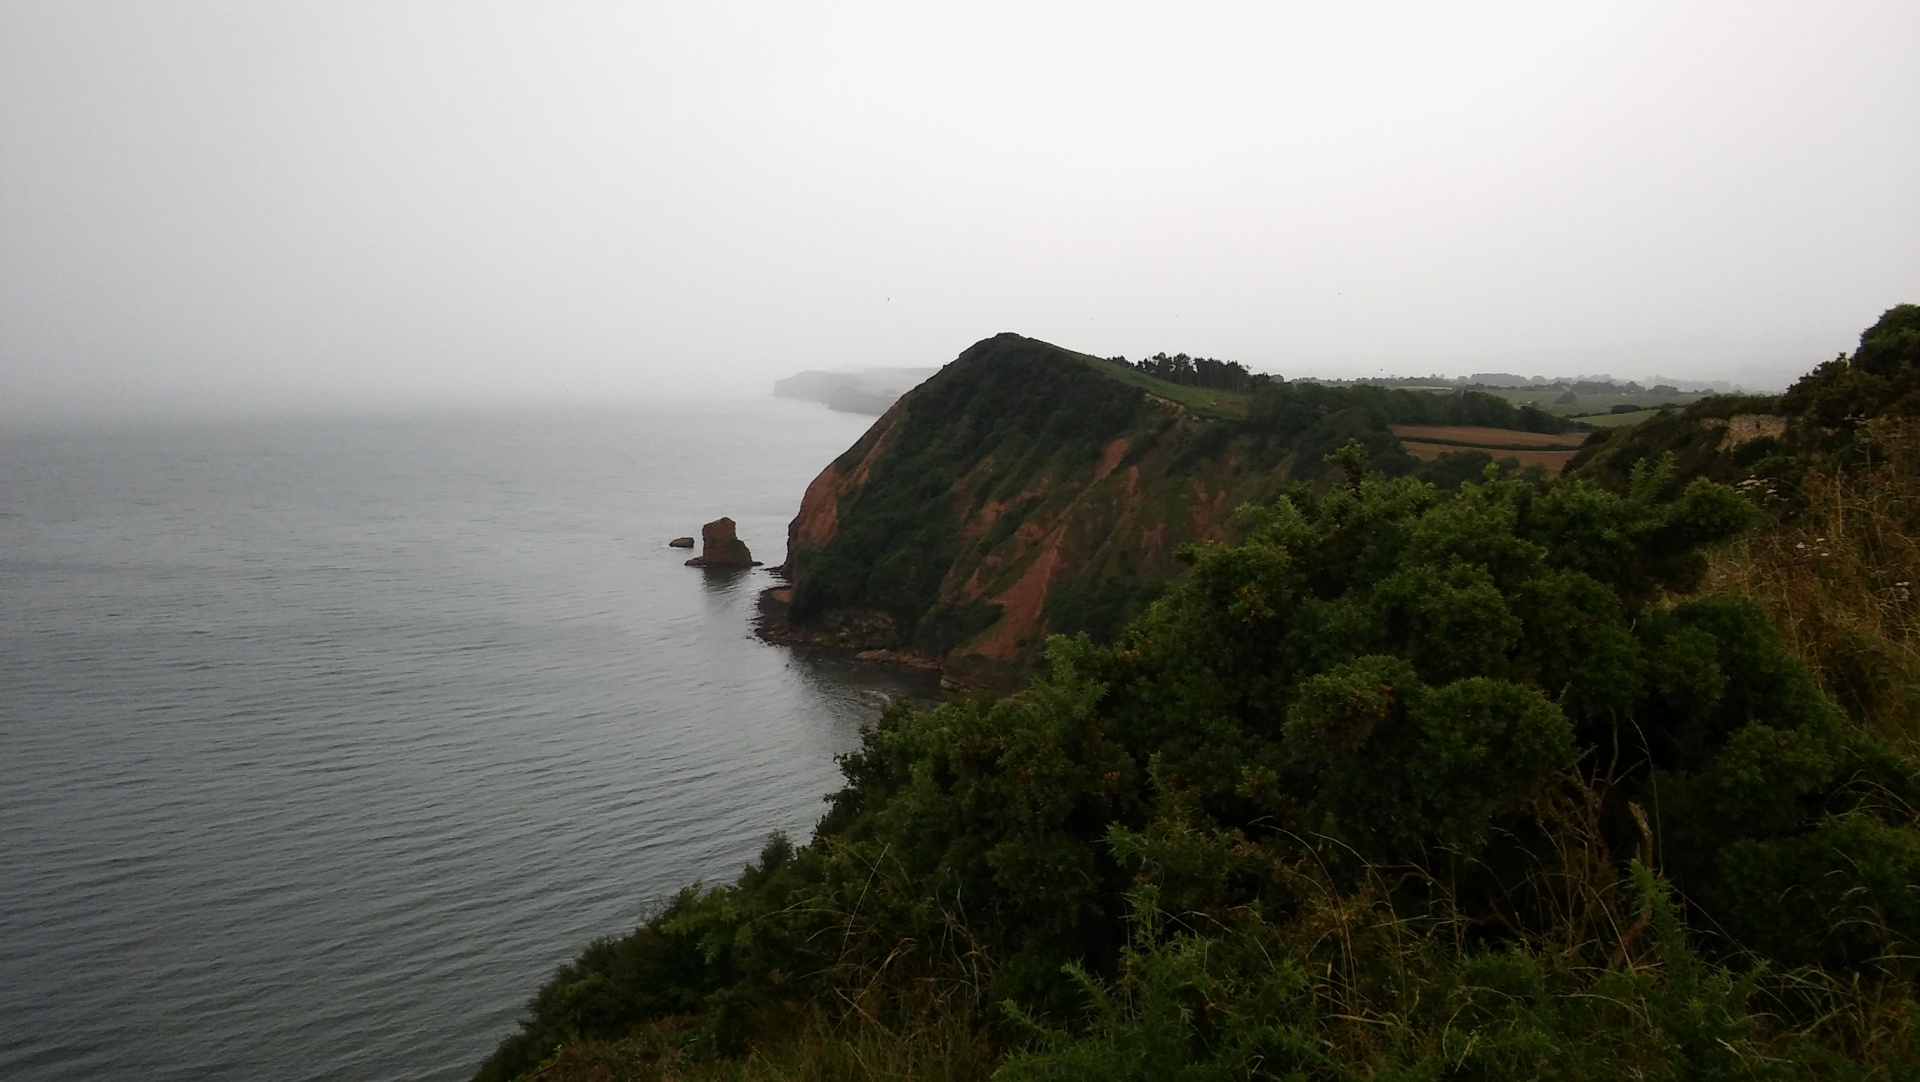 view from peak hill on rainy day